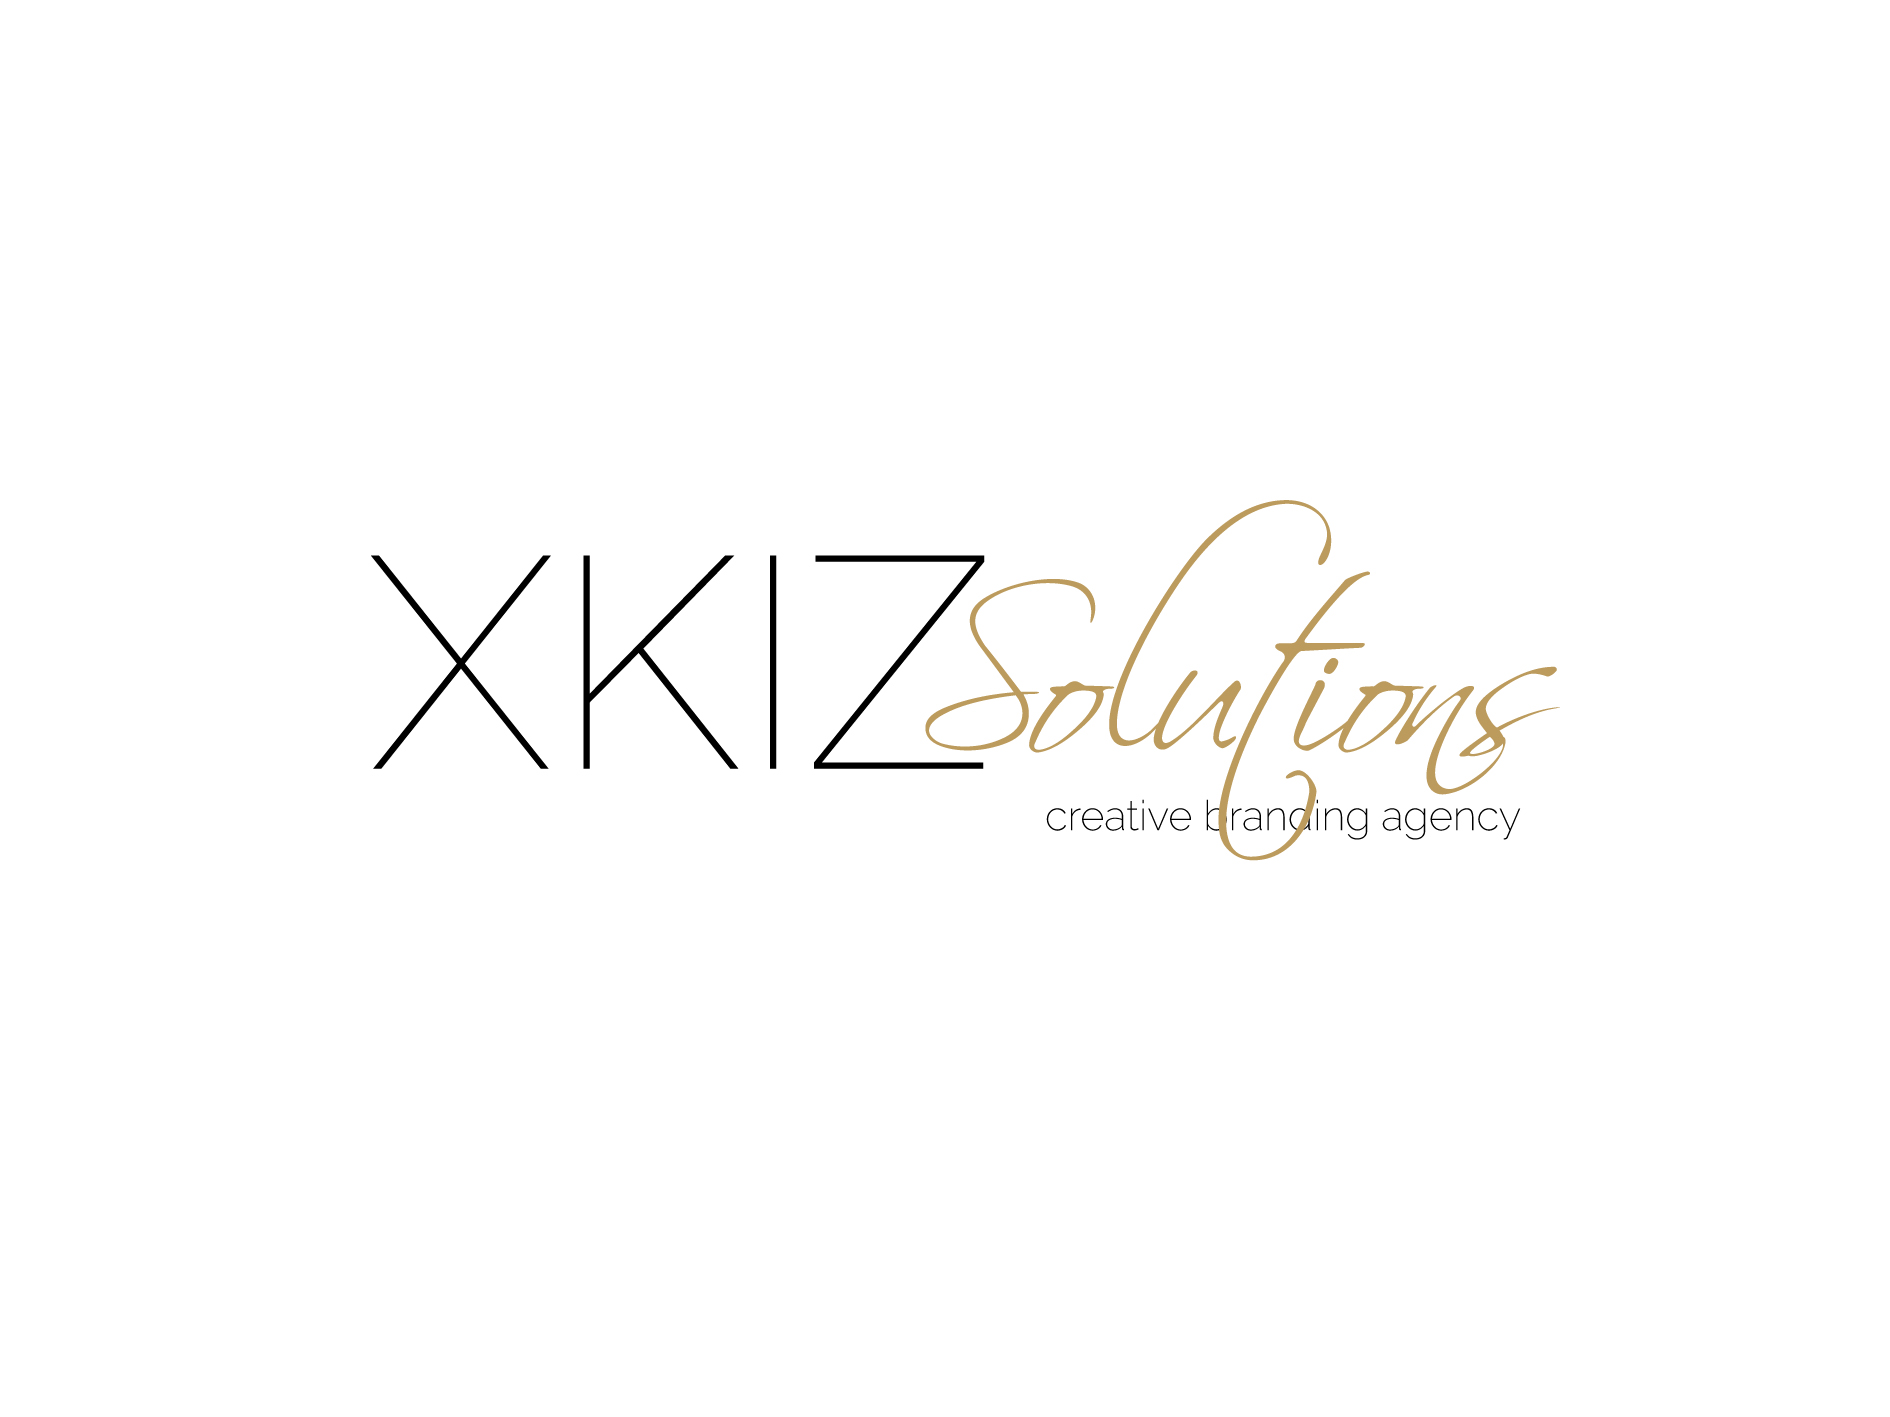 xkizsolutionslogo